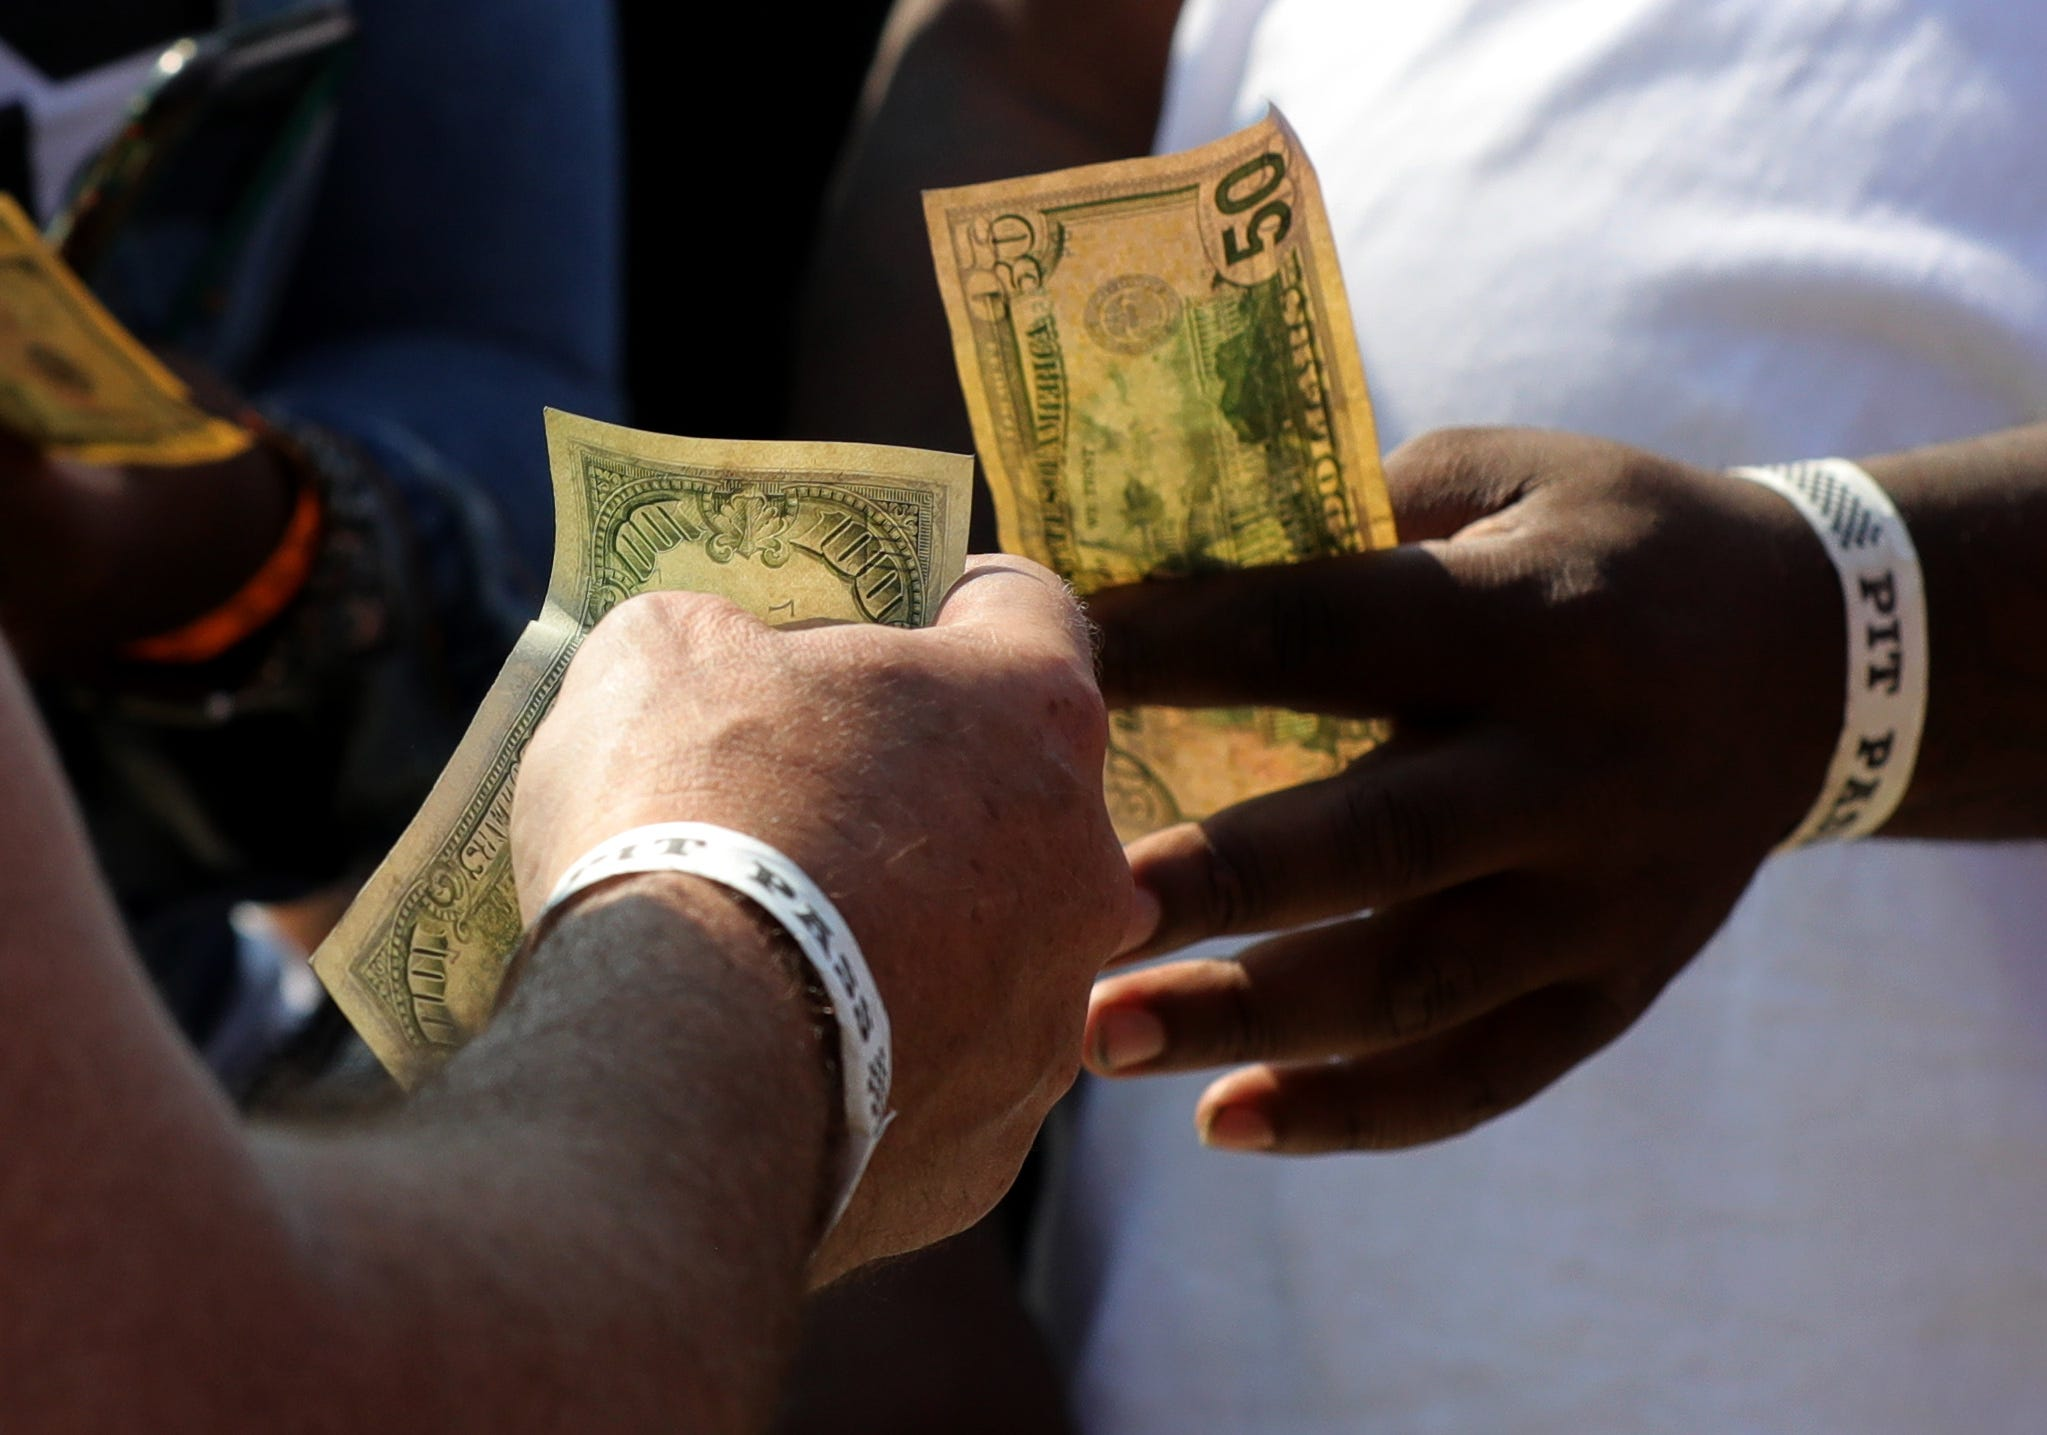 Fans make side bets during the races at Lapeer International Dragway on Saturday, July 17, 2021.